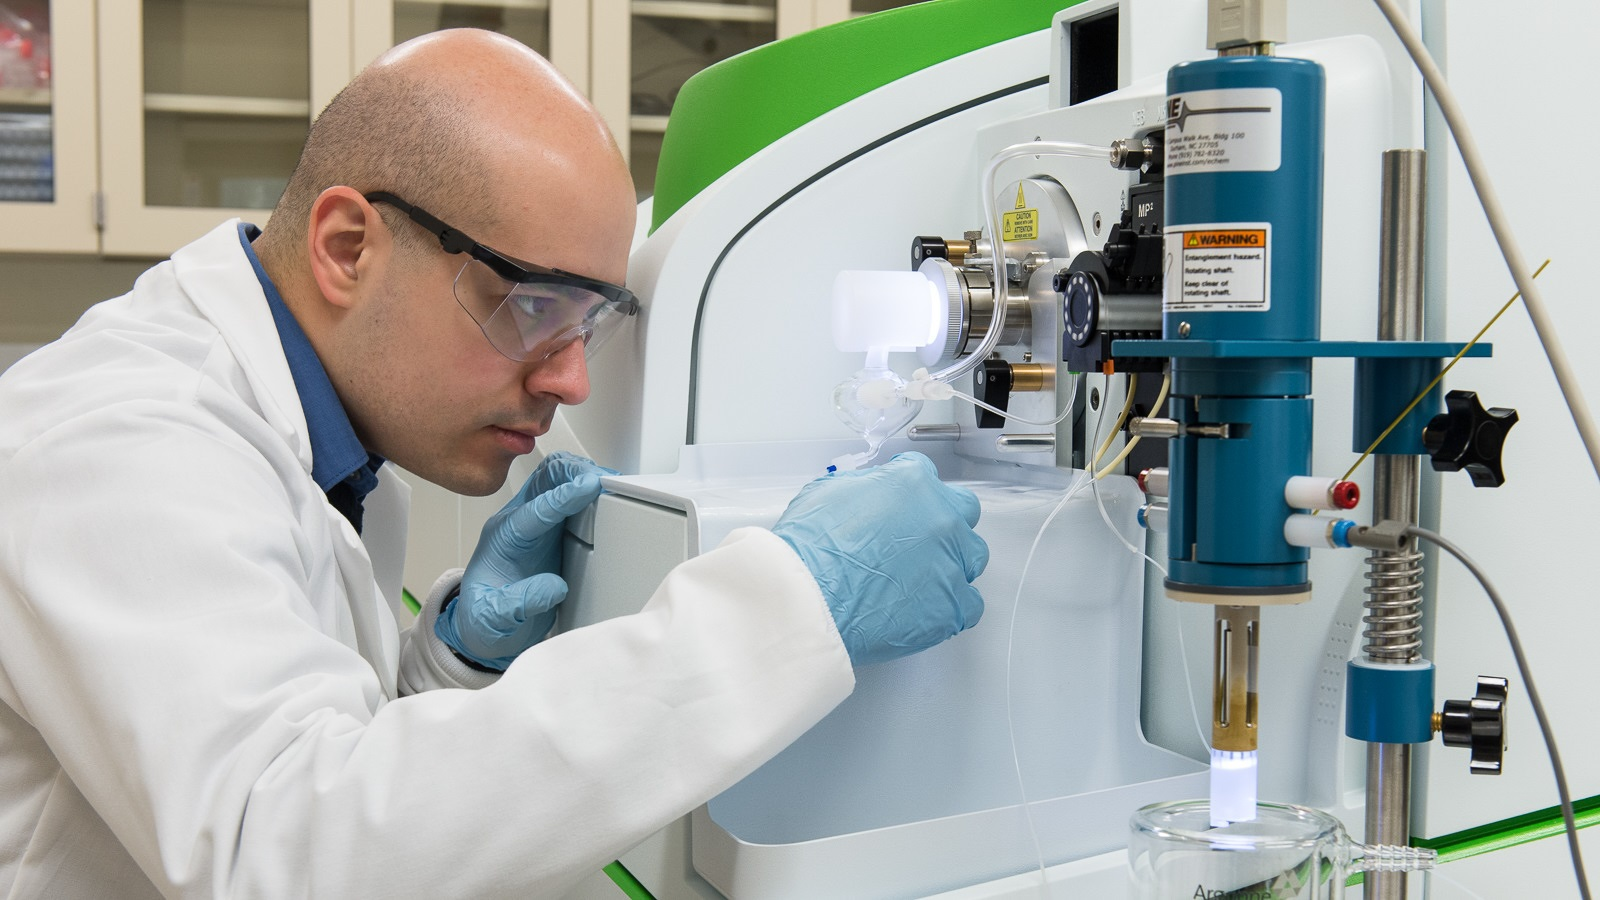 Pietro Lopez operates the setup used to perform the in situ dissolution measurements of trace levels of iron interacting dynamically with the electrode surface. (Image by Mark Lopez, Argonne National Laboratory.)